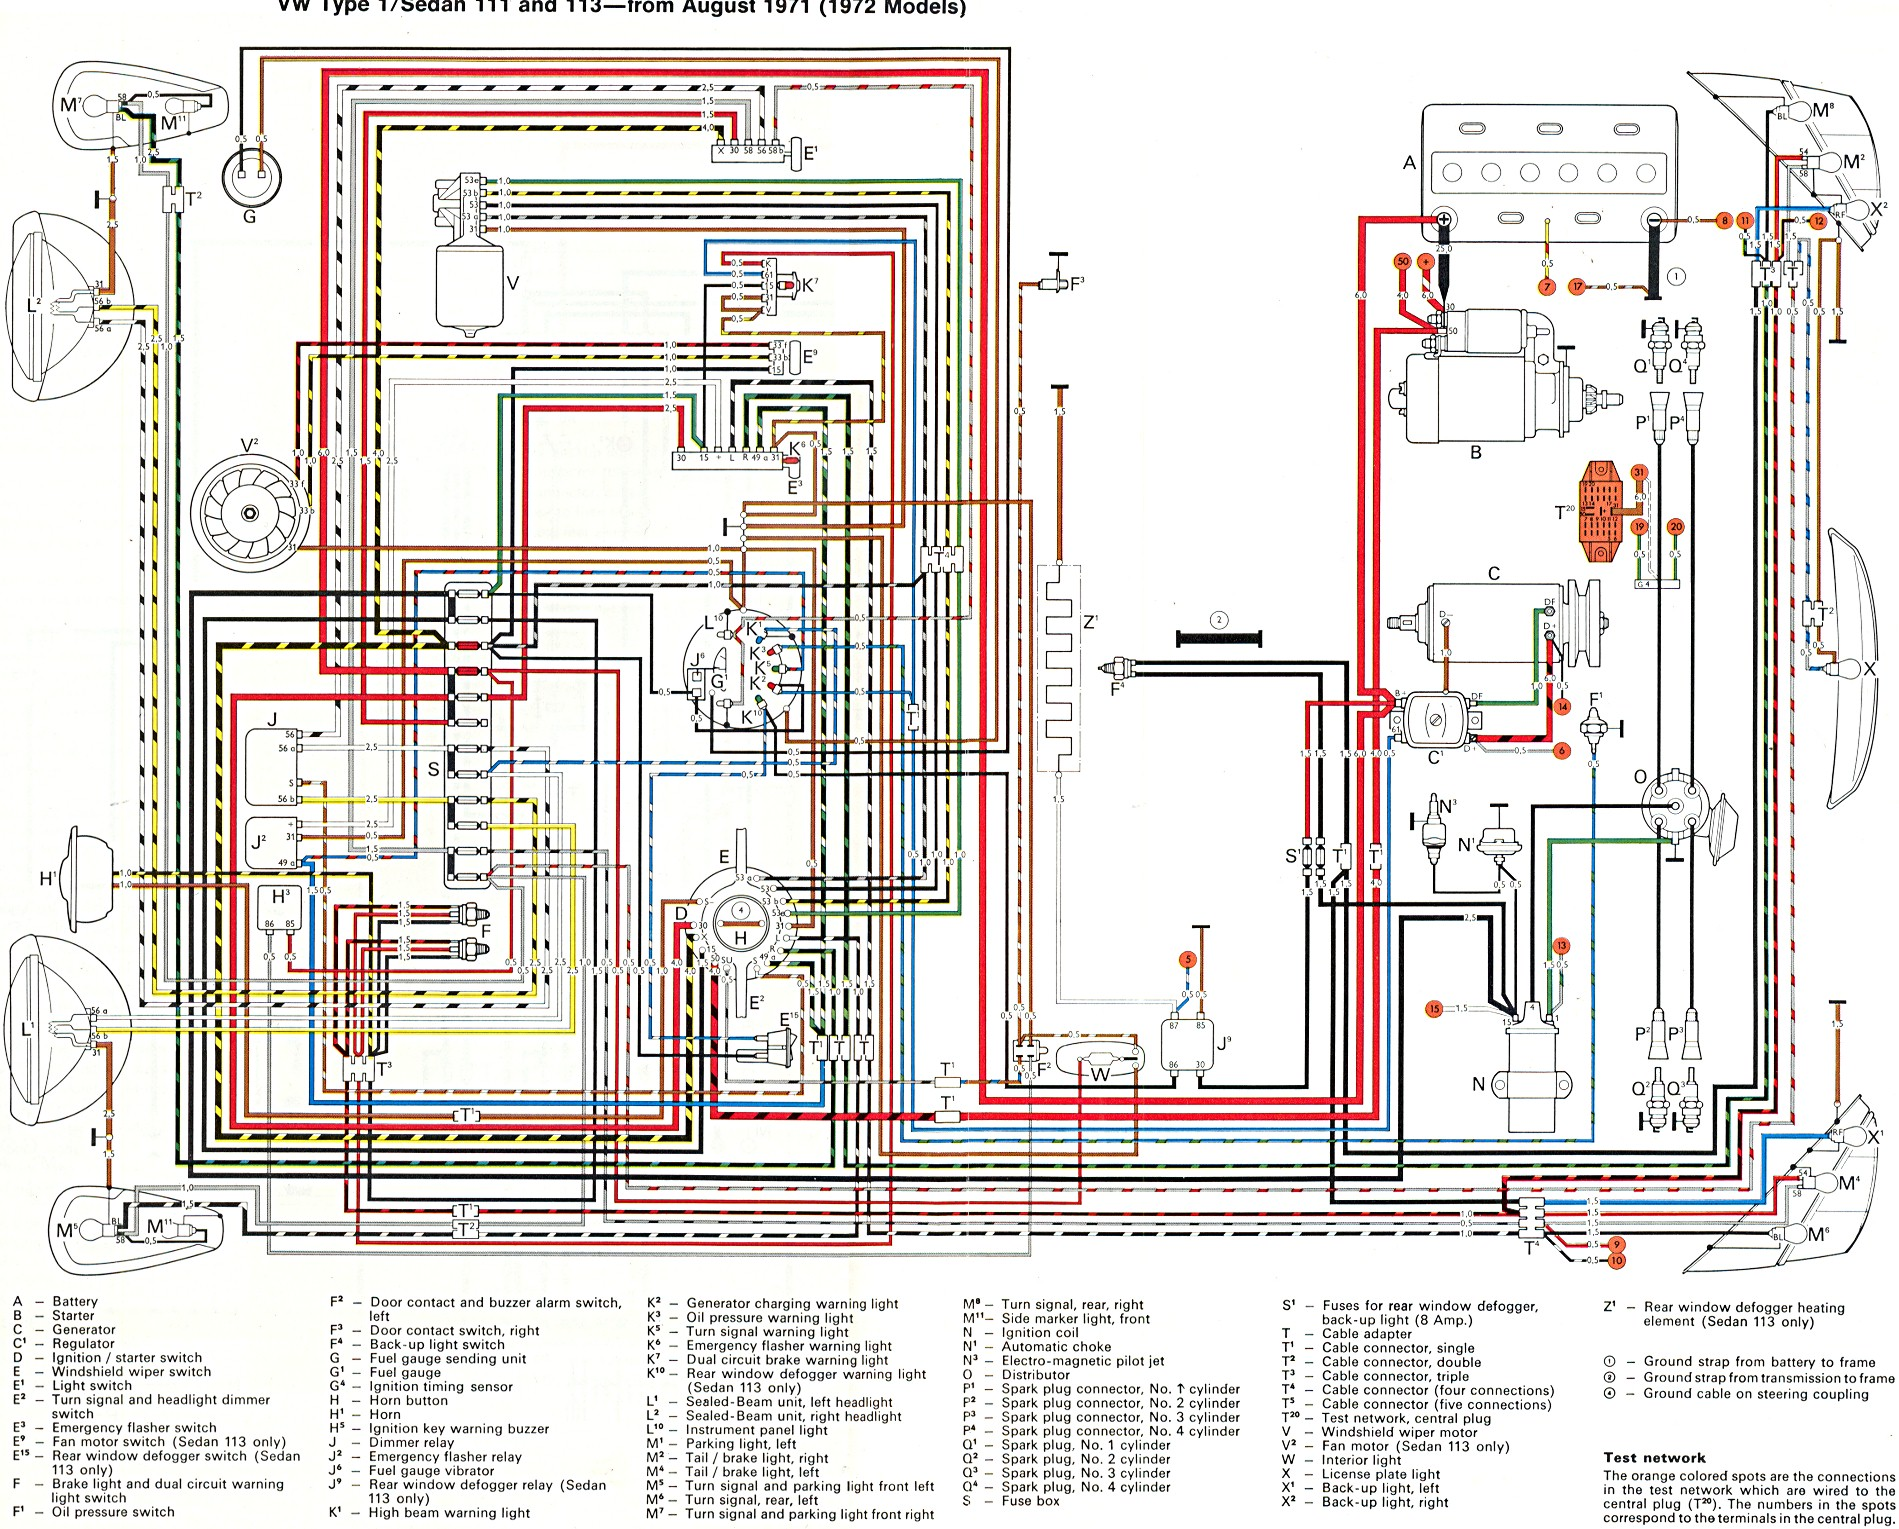 1974 Vw Engine Diagram Reveolution Of Wiring Volkswagen Diagrams 1972 Layout U2022 Rh Laurafinlay Co Uk 1967 Beetle